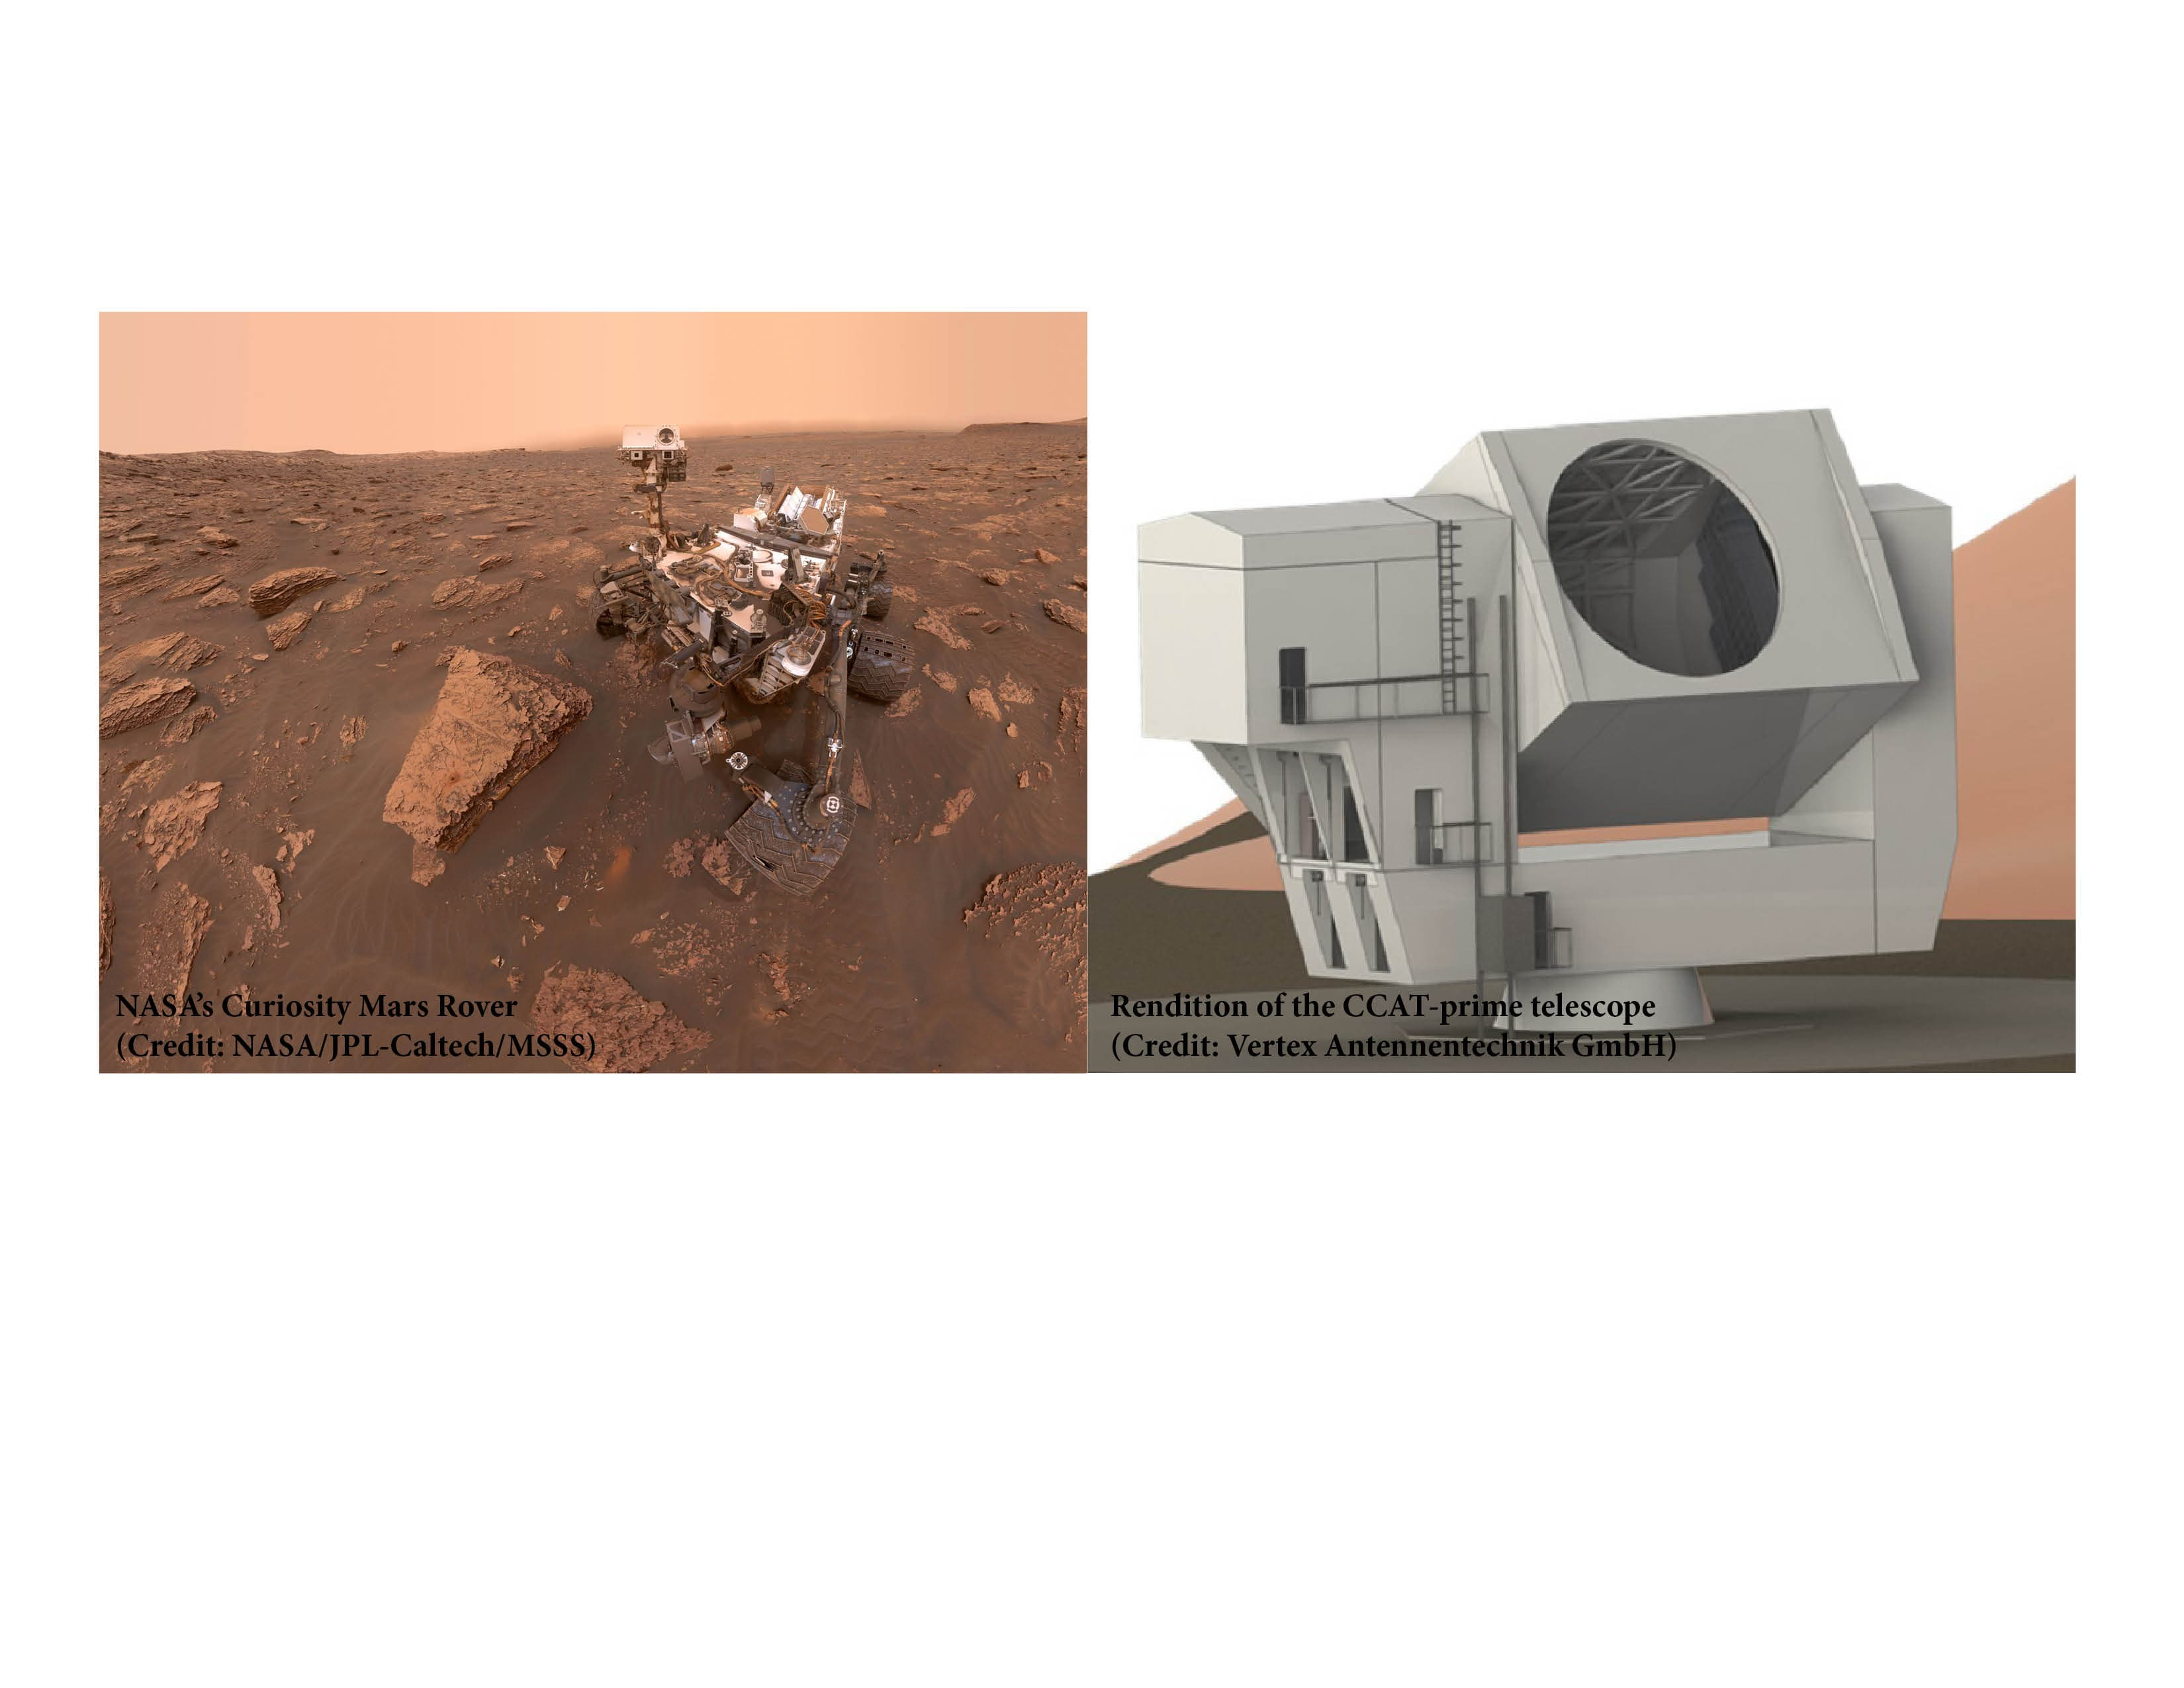 The Curiosity Rover and a facsimile of the CCAT-Prime telescope